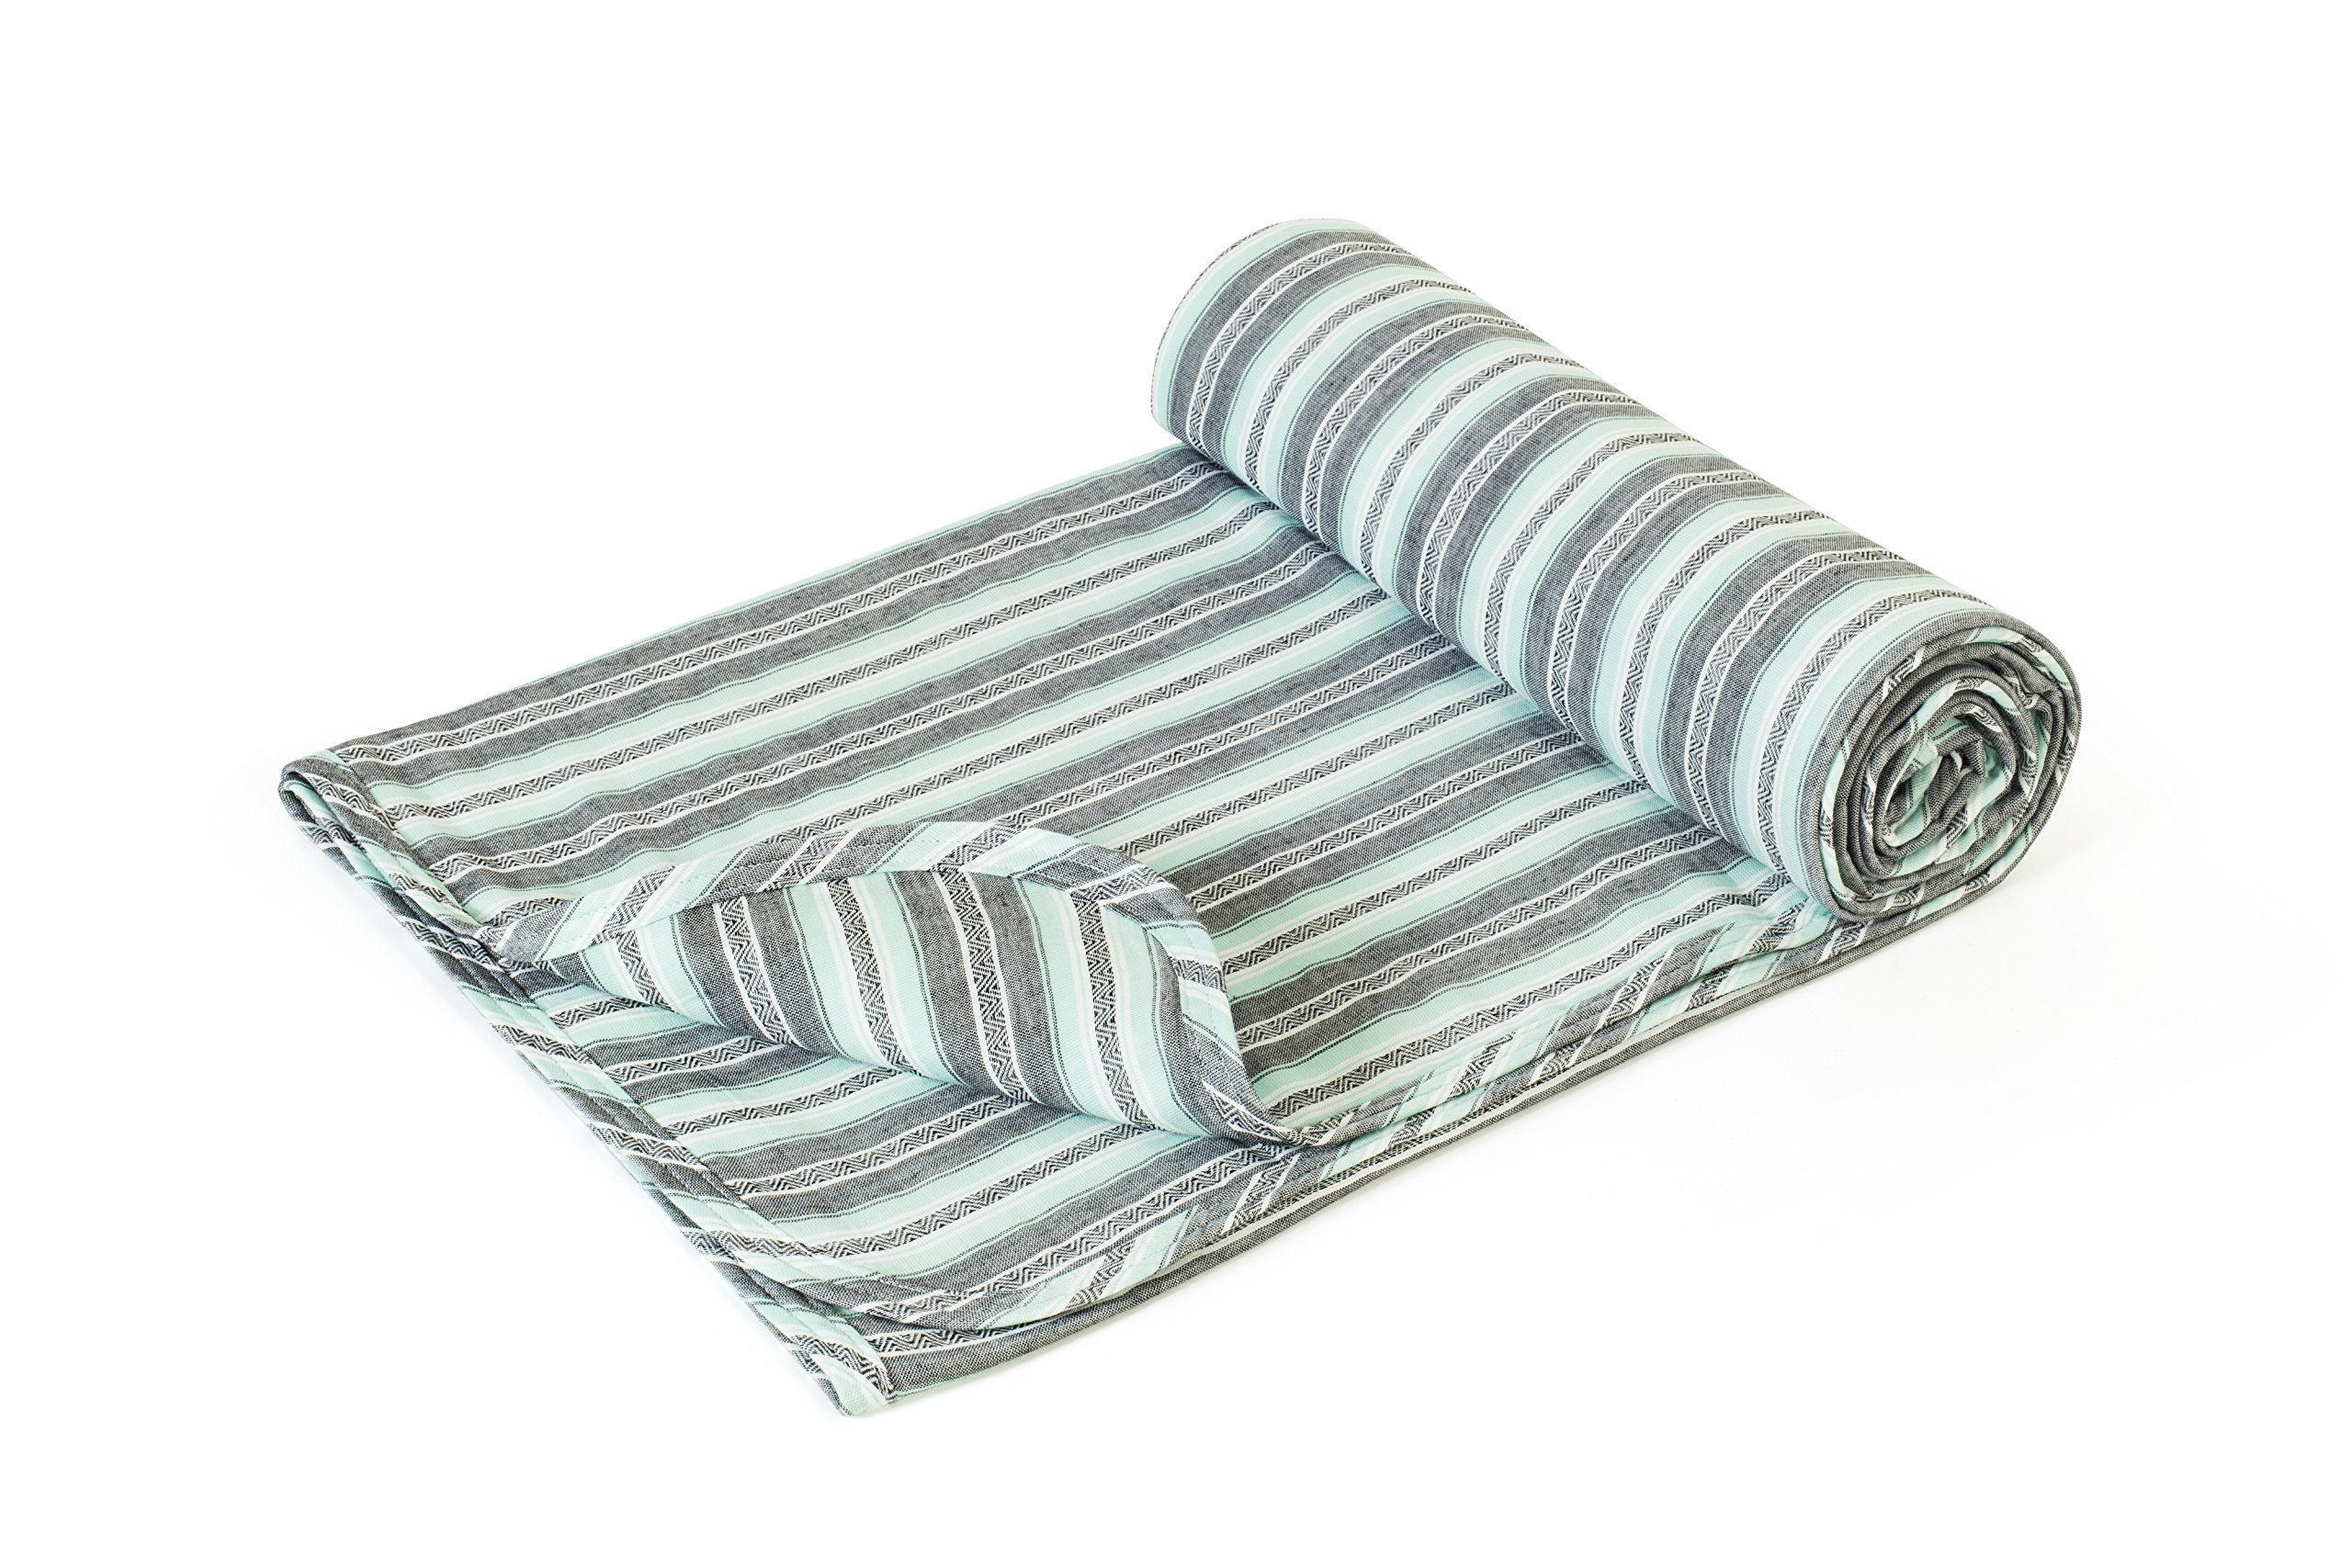 Henry and Bros. Large Double Layer Toddler Blanket, Girl Nap Blanket/Boy Nap Blanket, Light Blanket for Kids, Kids Blanket Patterns Made of 100% Cotton (Mint Aztec Stripe)